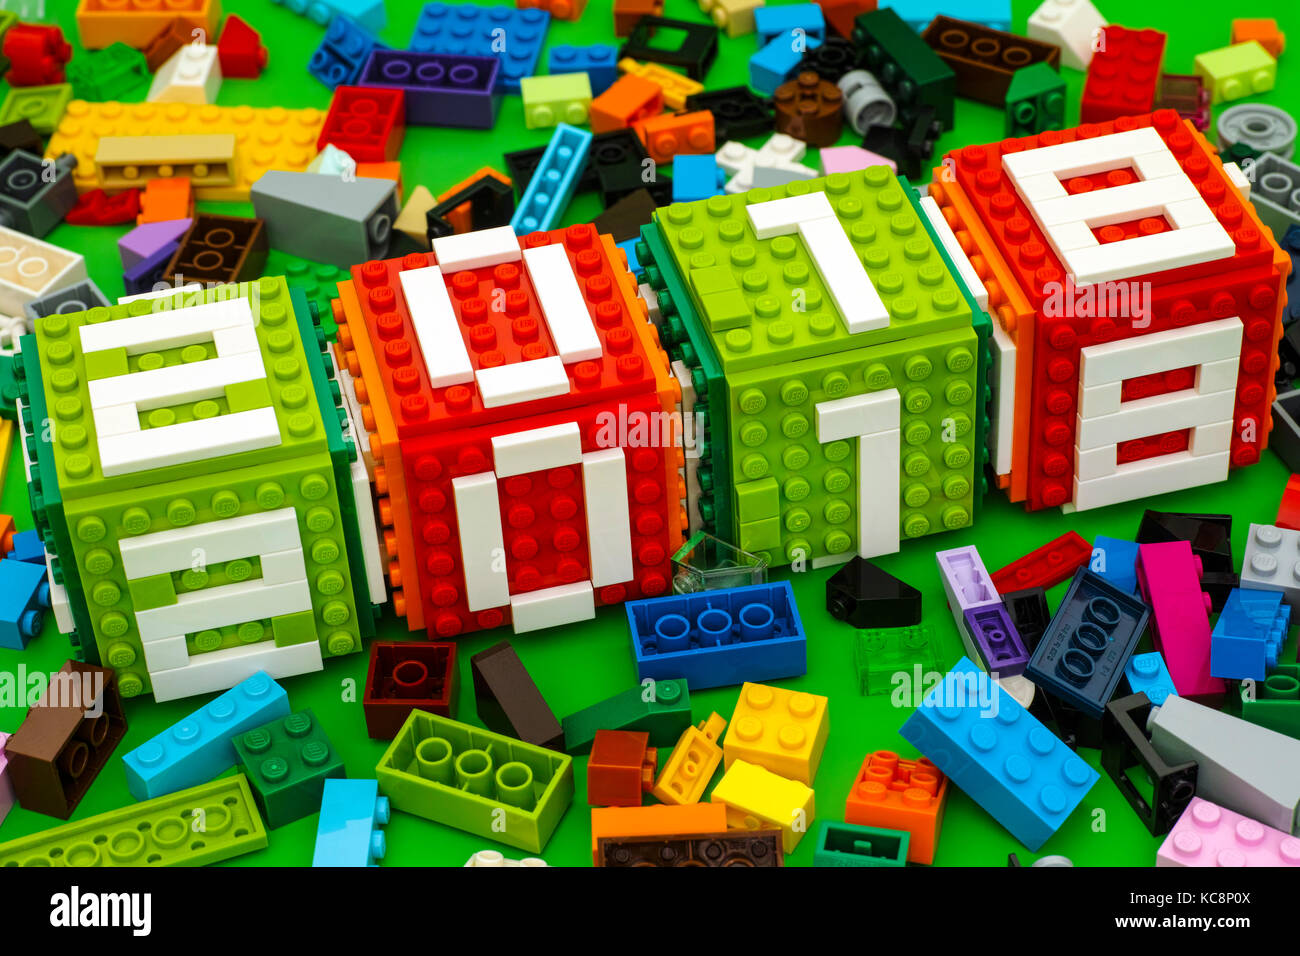 Tambov, Russian Federation - September 28, 2017 Lego New year 2018 concept. Lego cubes  with numbers 2 0 1 8 on - Stock Image